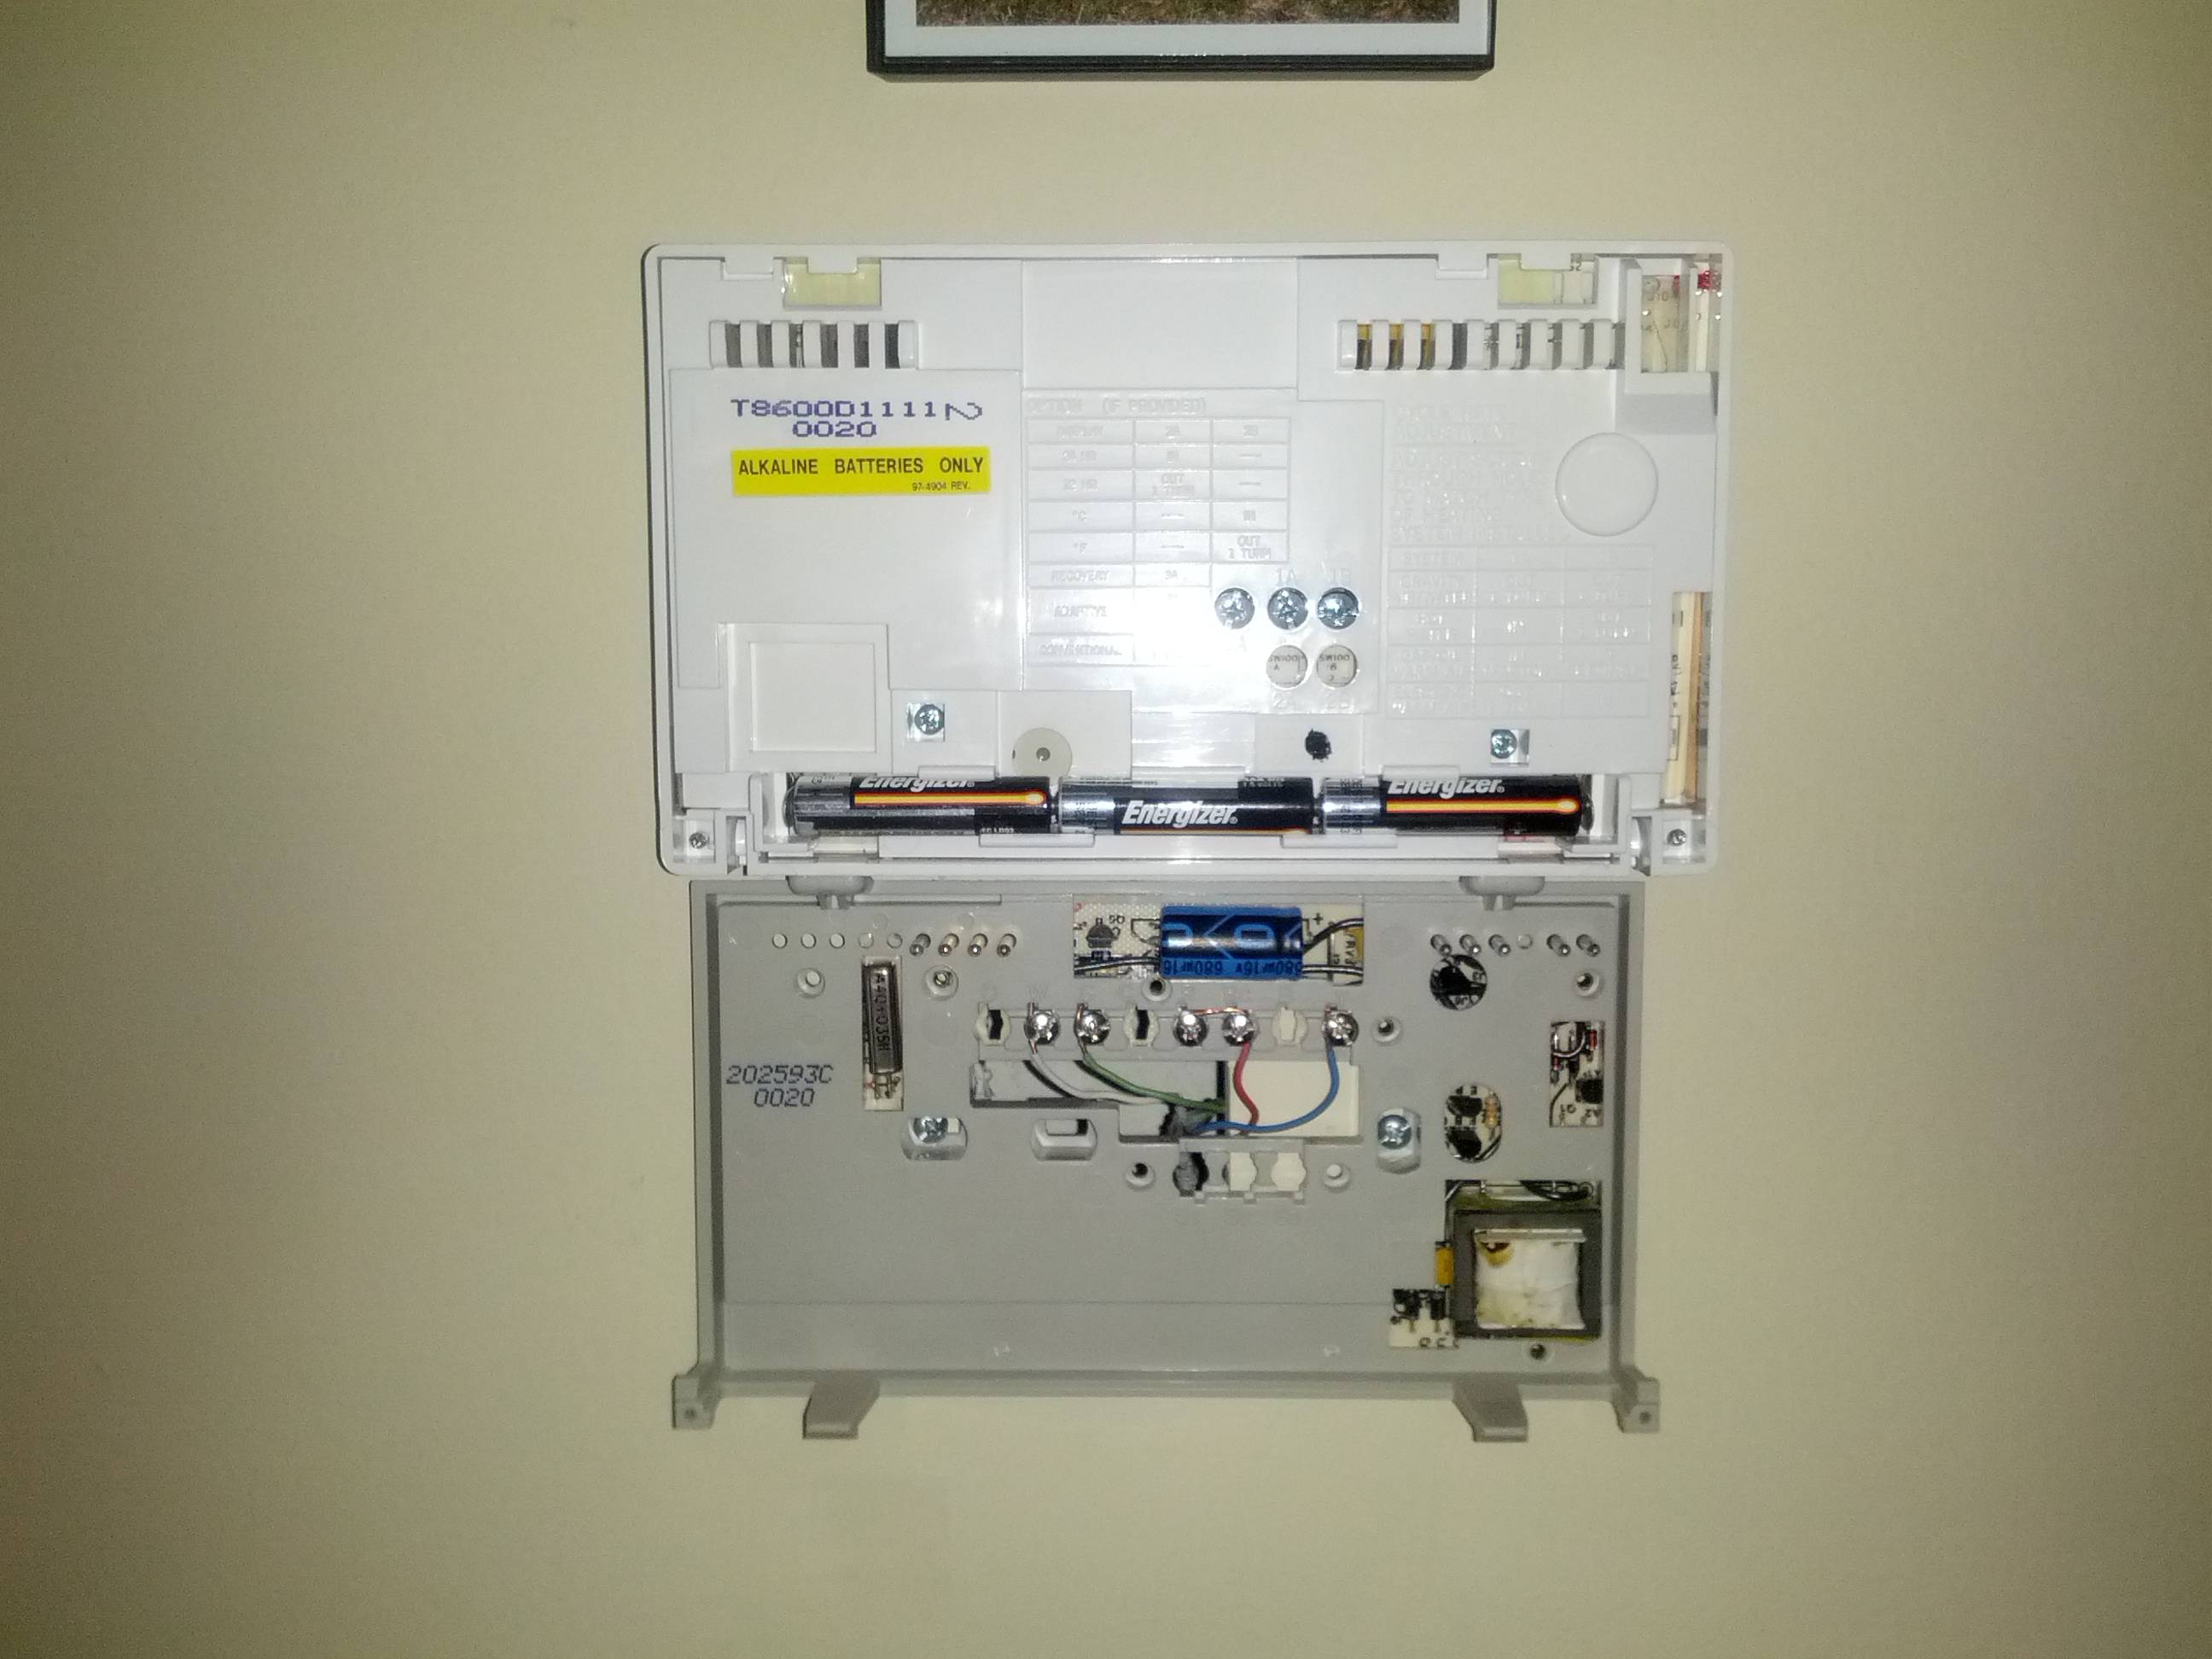 Honeywell T8600 D Stat Problems? — Heating Help: The Wall